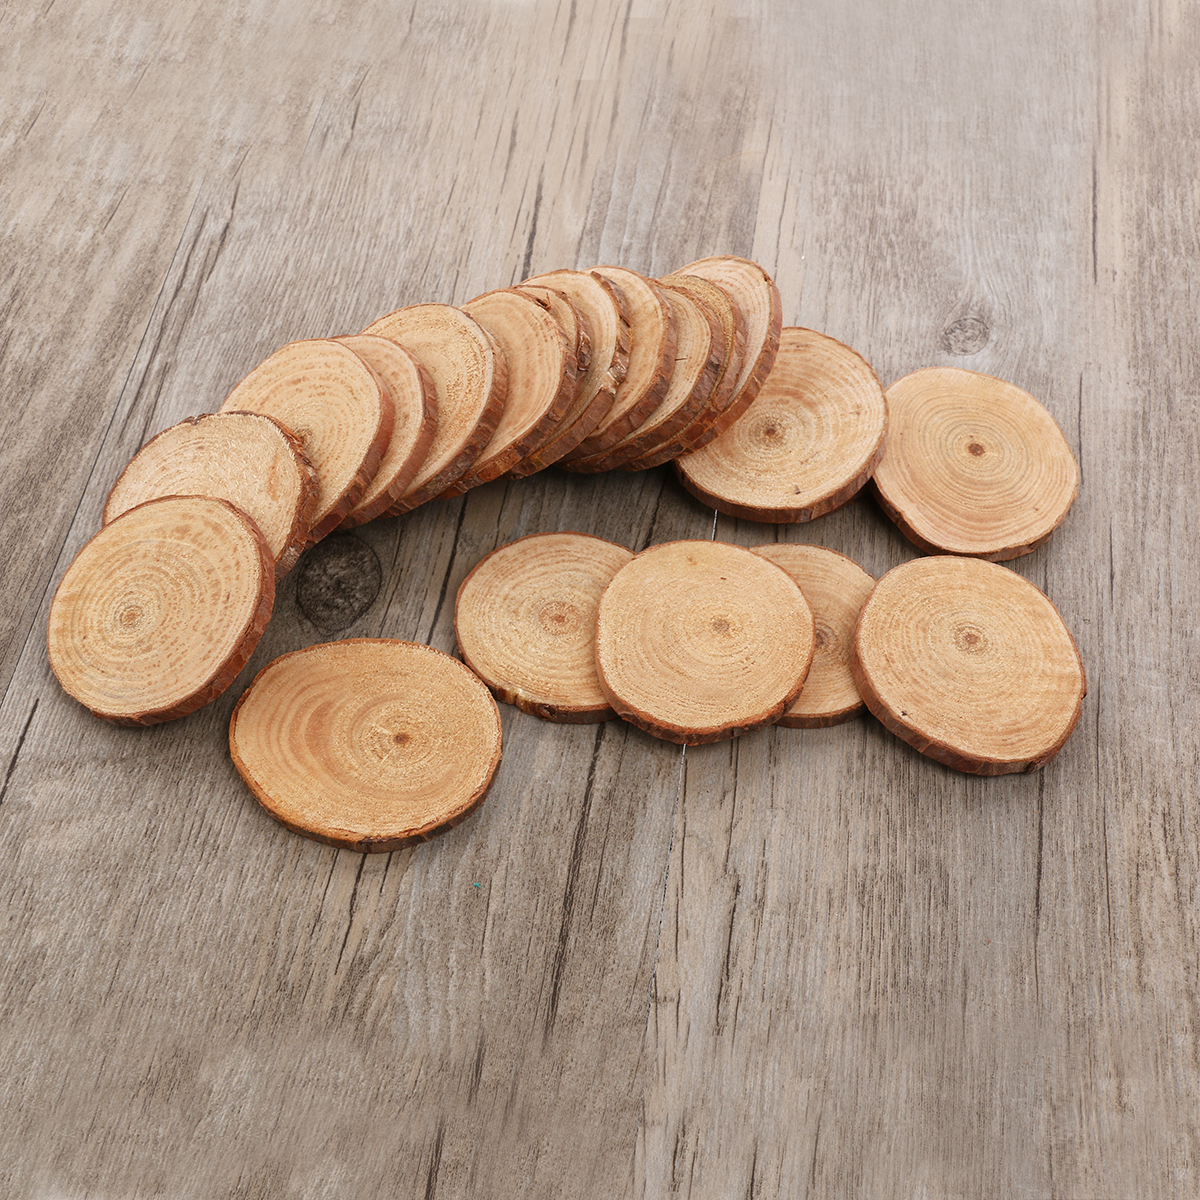 Wooden circles for crafts - 20pcs 5 6cm Wood Log Slices Discs Cutout Circle Round Large Wood Disks Crafts Paint